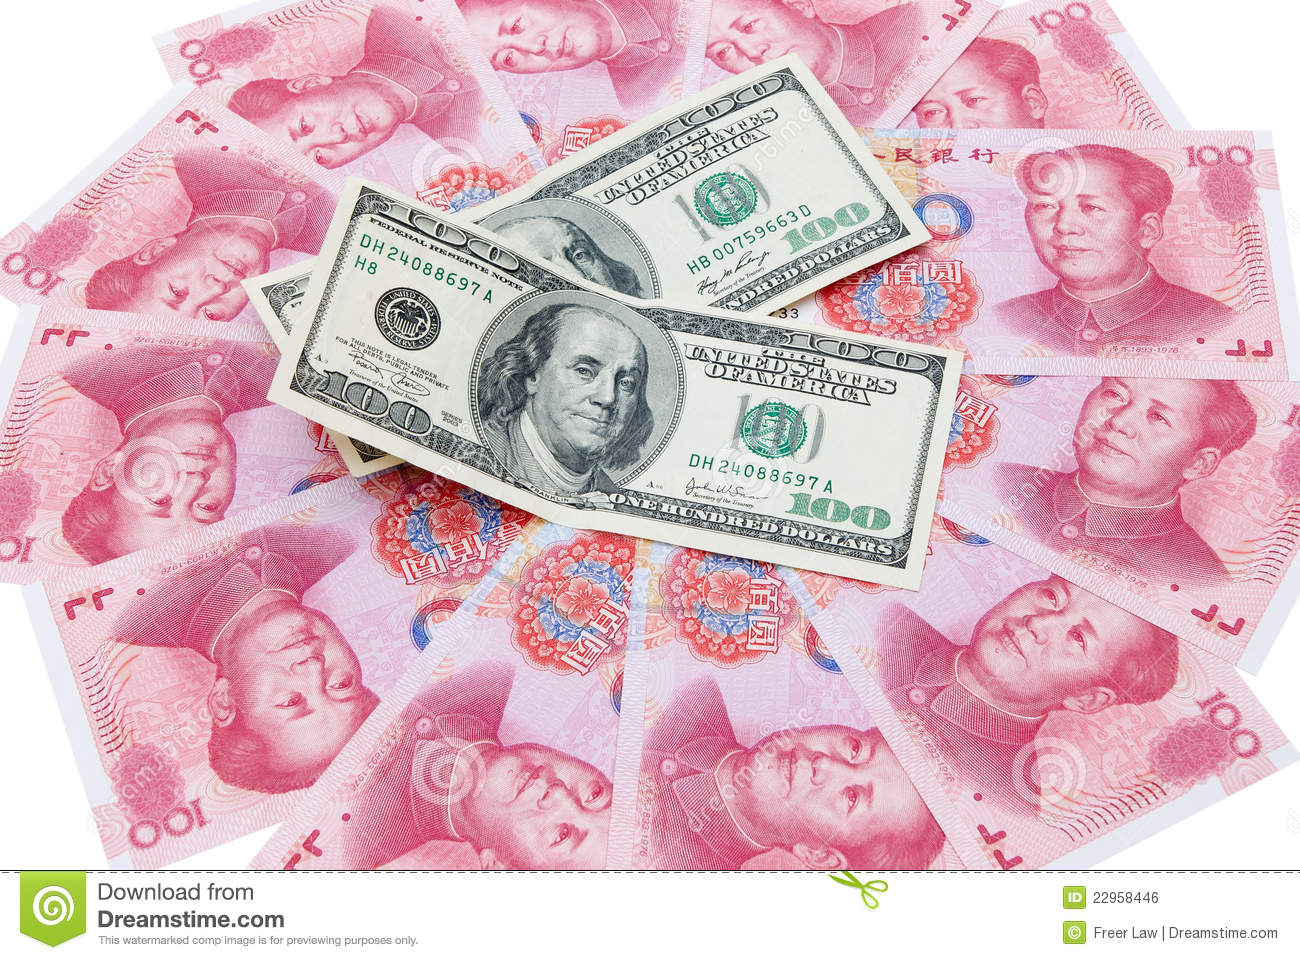 us dollar vs rmb The chinese yuan vs us dollar rate has increased by 10% since the beginning of 2017 however, it has remained stable against the chinese rmb index, involving a basket of strong currencies that offset the weakness of the dollar.